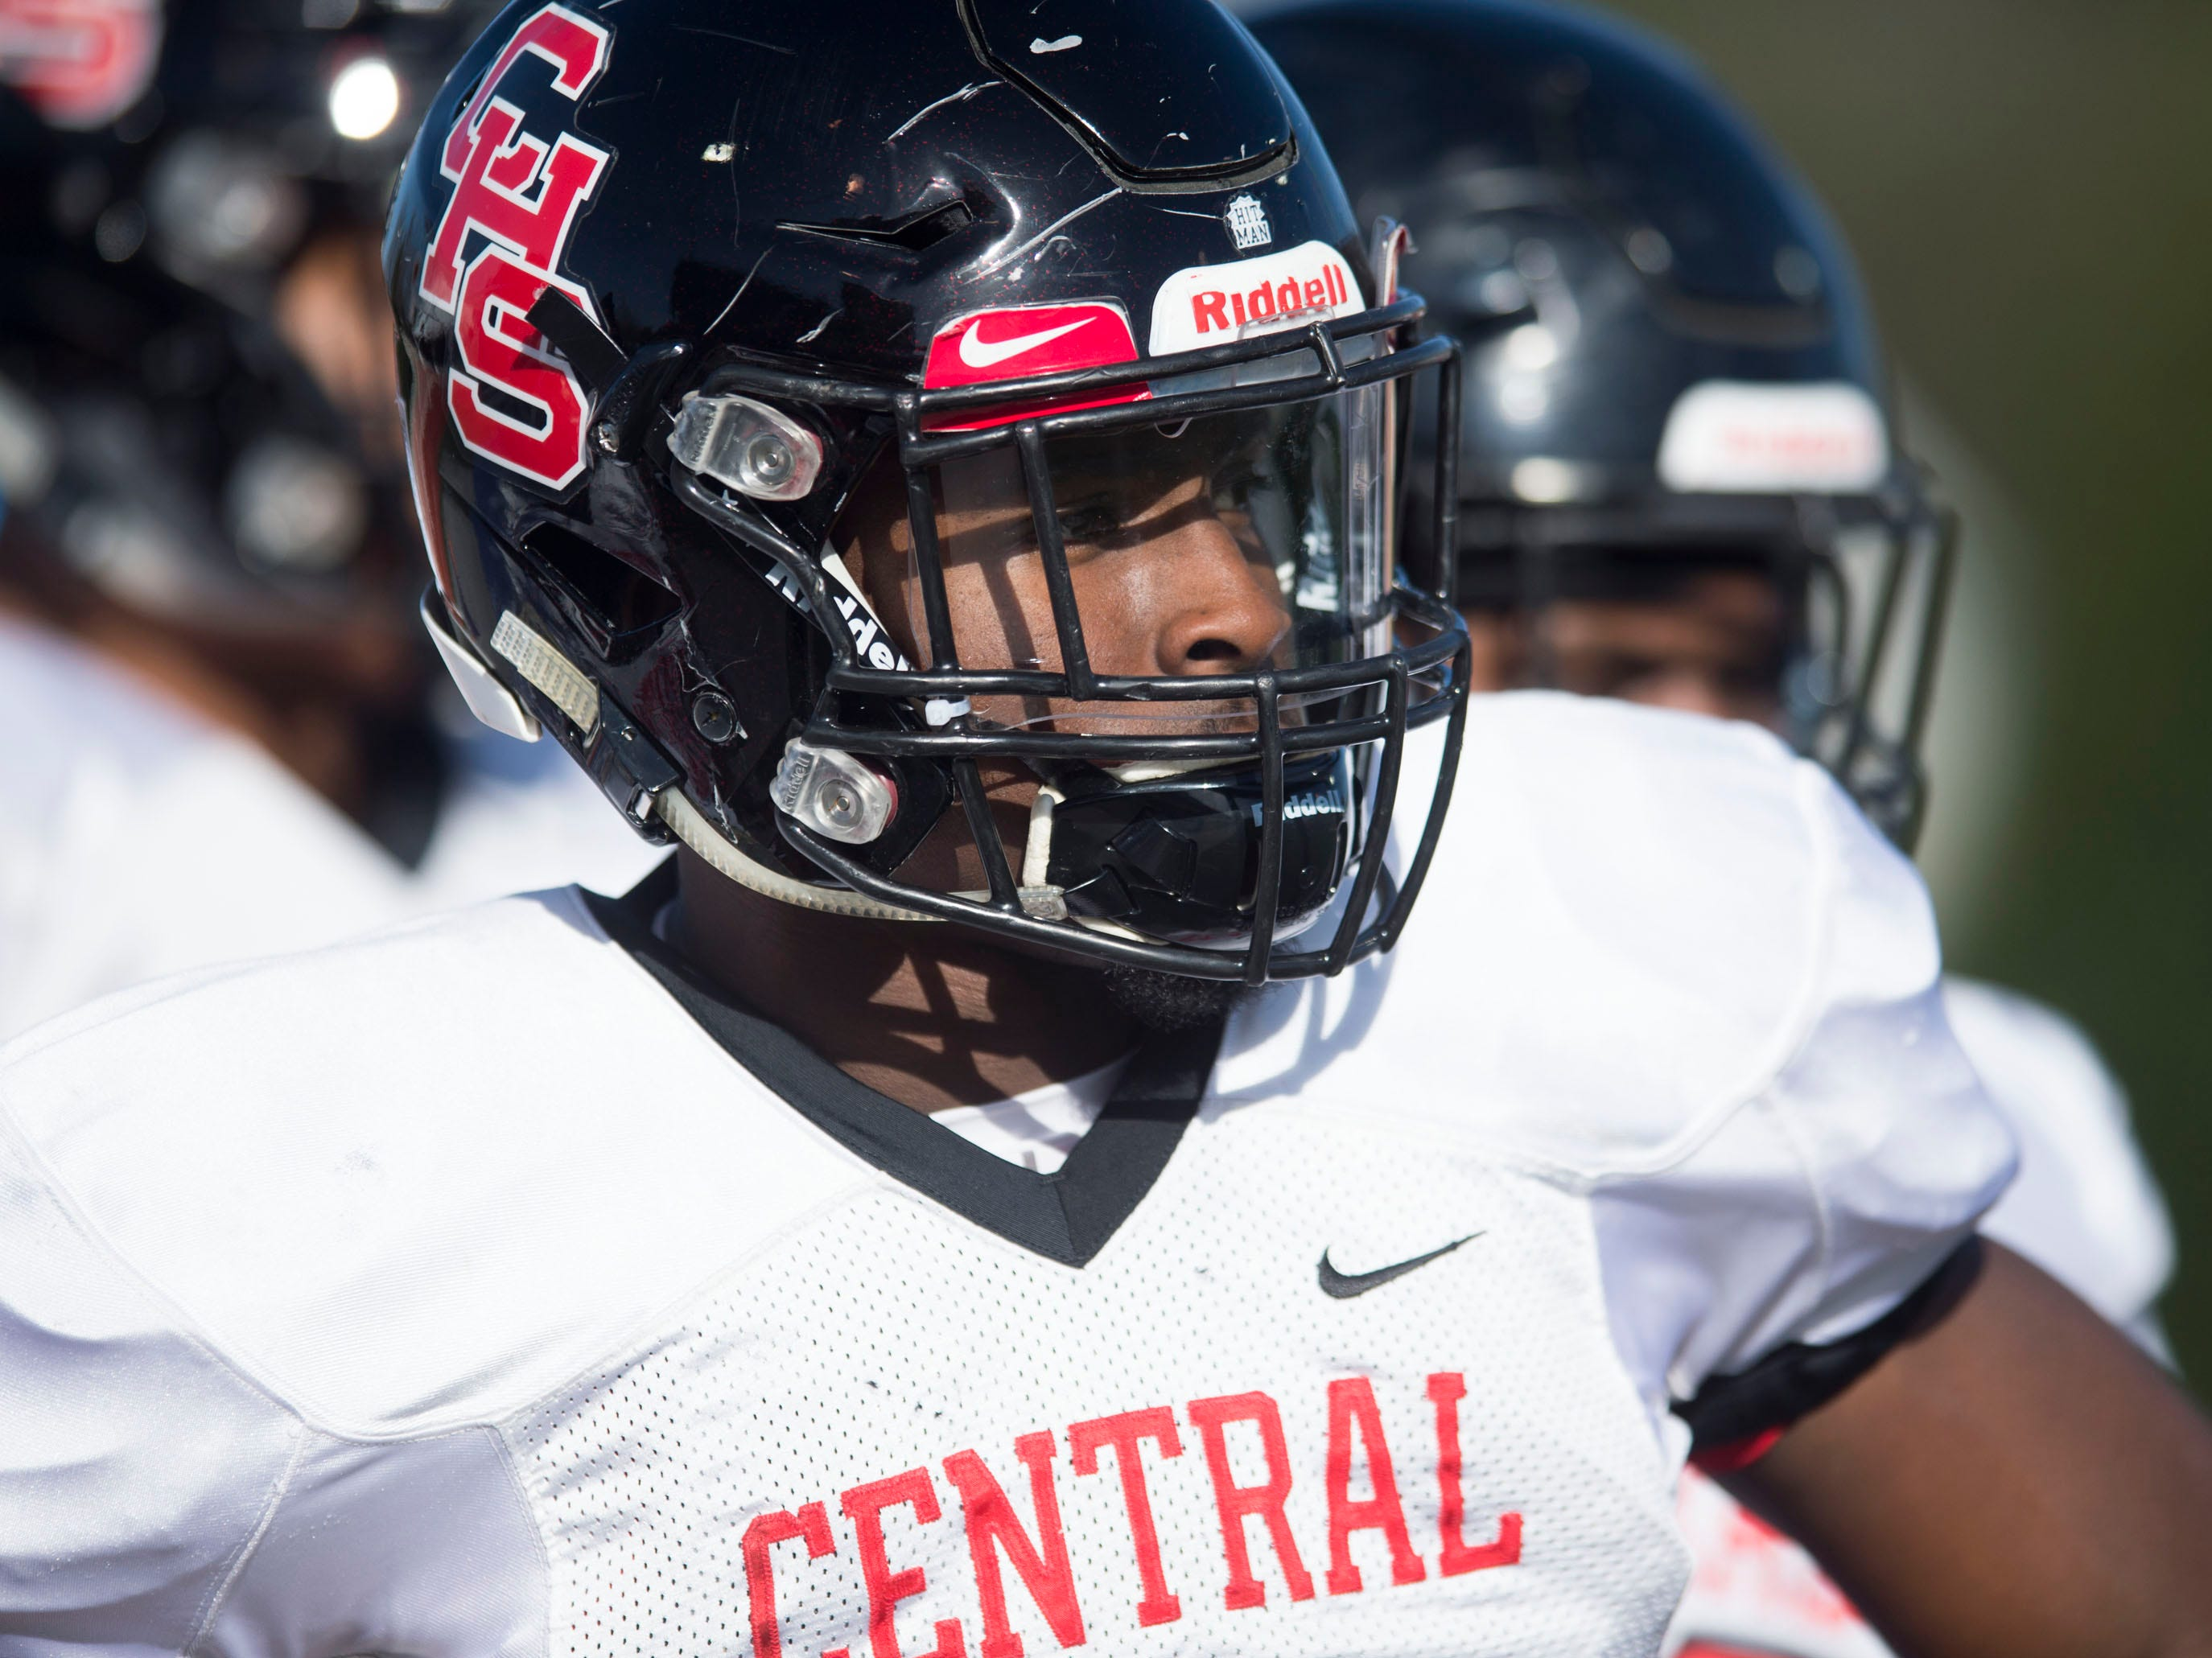 Knoxville Central's Xavier Washington (3) before the start of the game against Henry County in the Class 5A BlueCross Bowl at Tucker Stadium on Sunday, December 2, 2018.